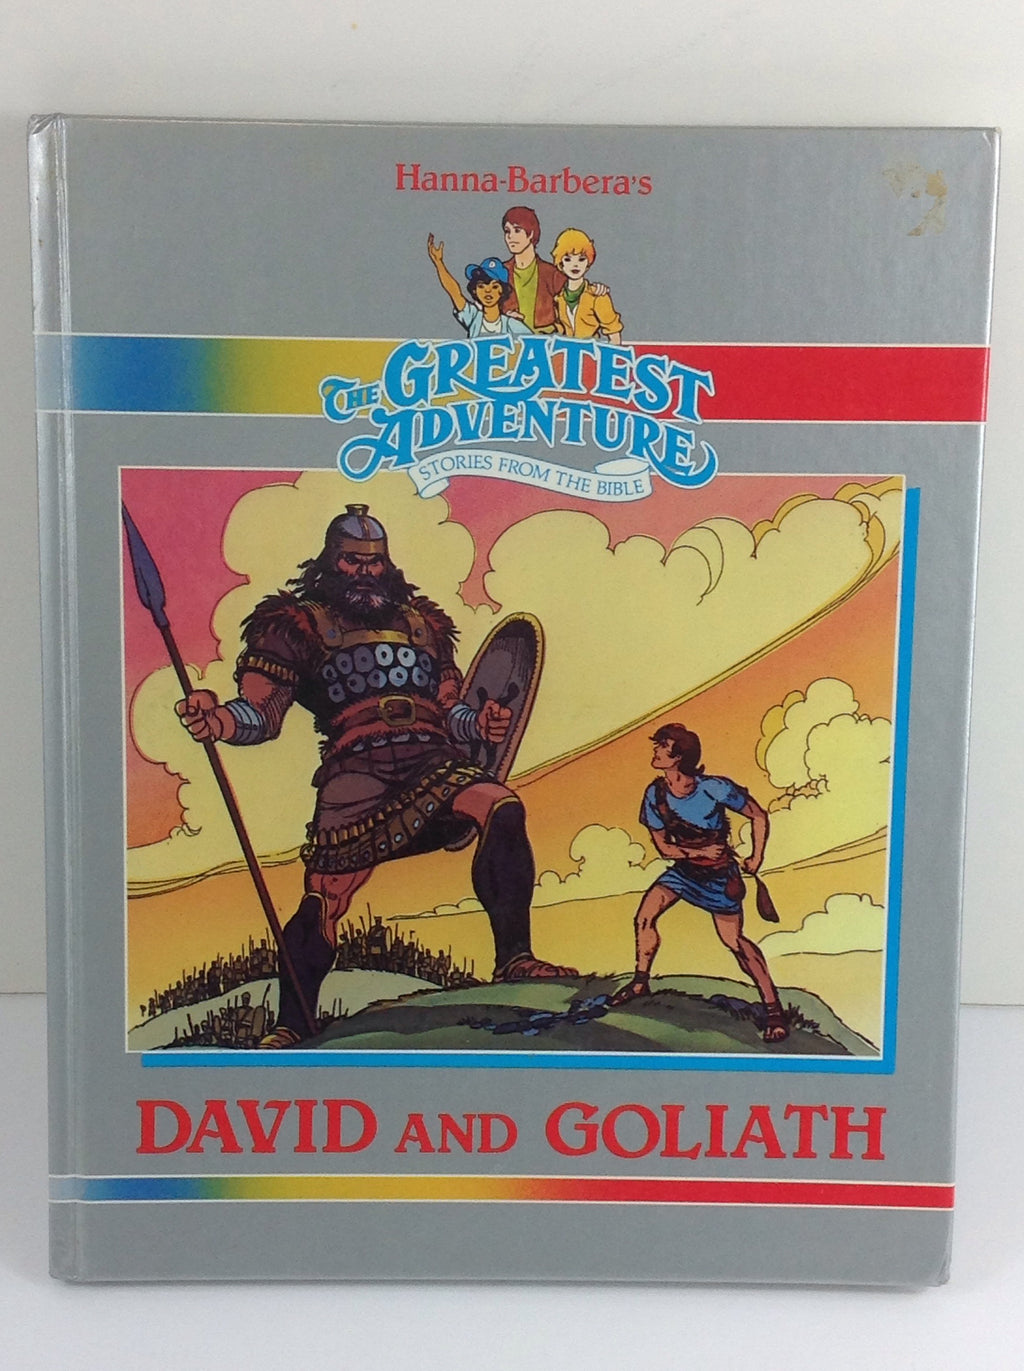 David and Goliath (Hanna-Barbera's : The Greatest Adventure, Stories from the Bible